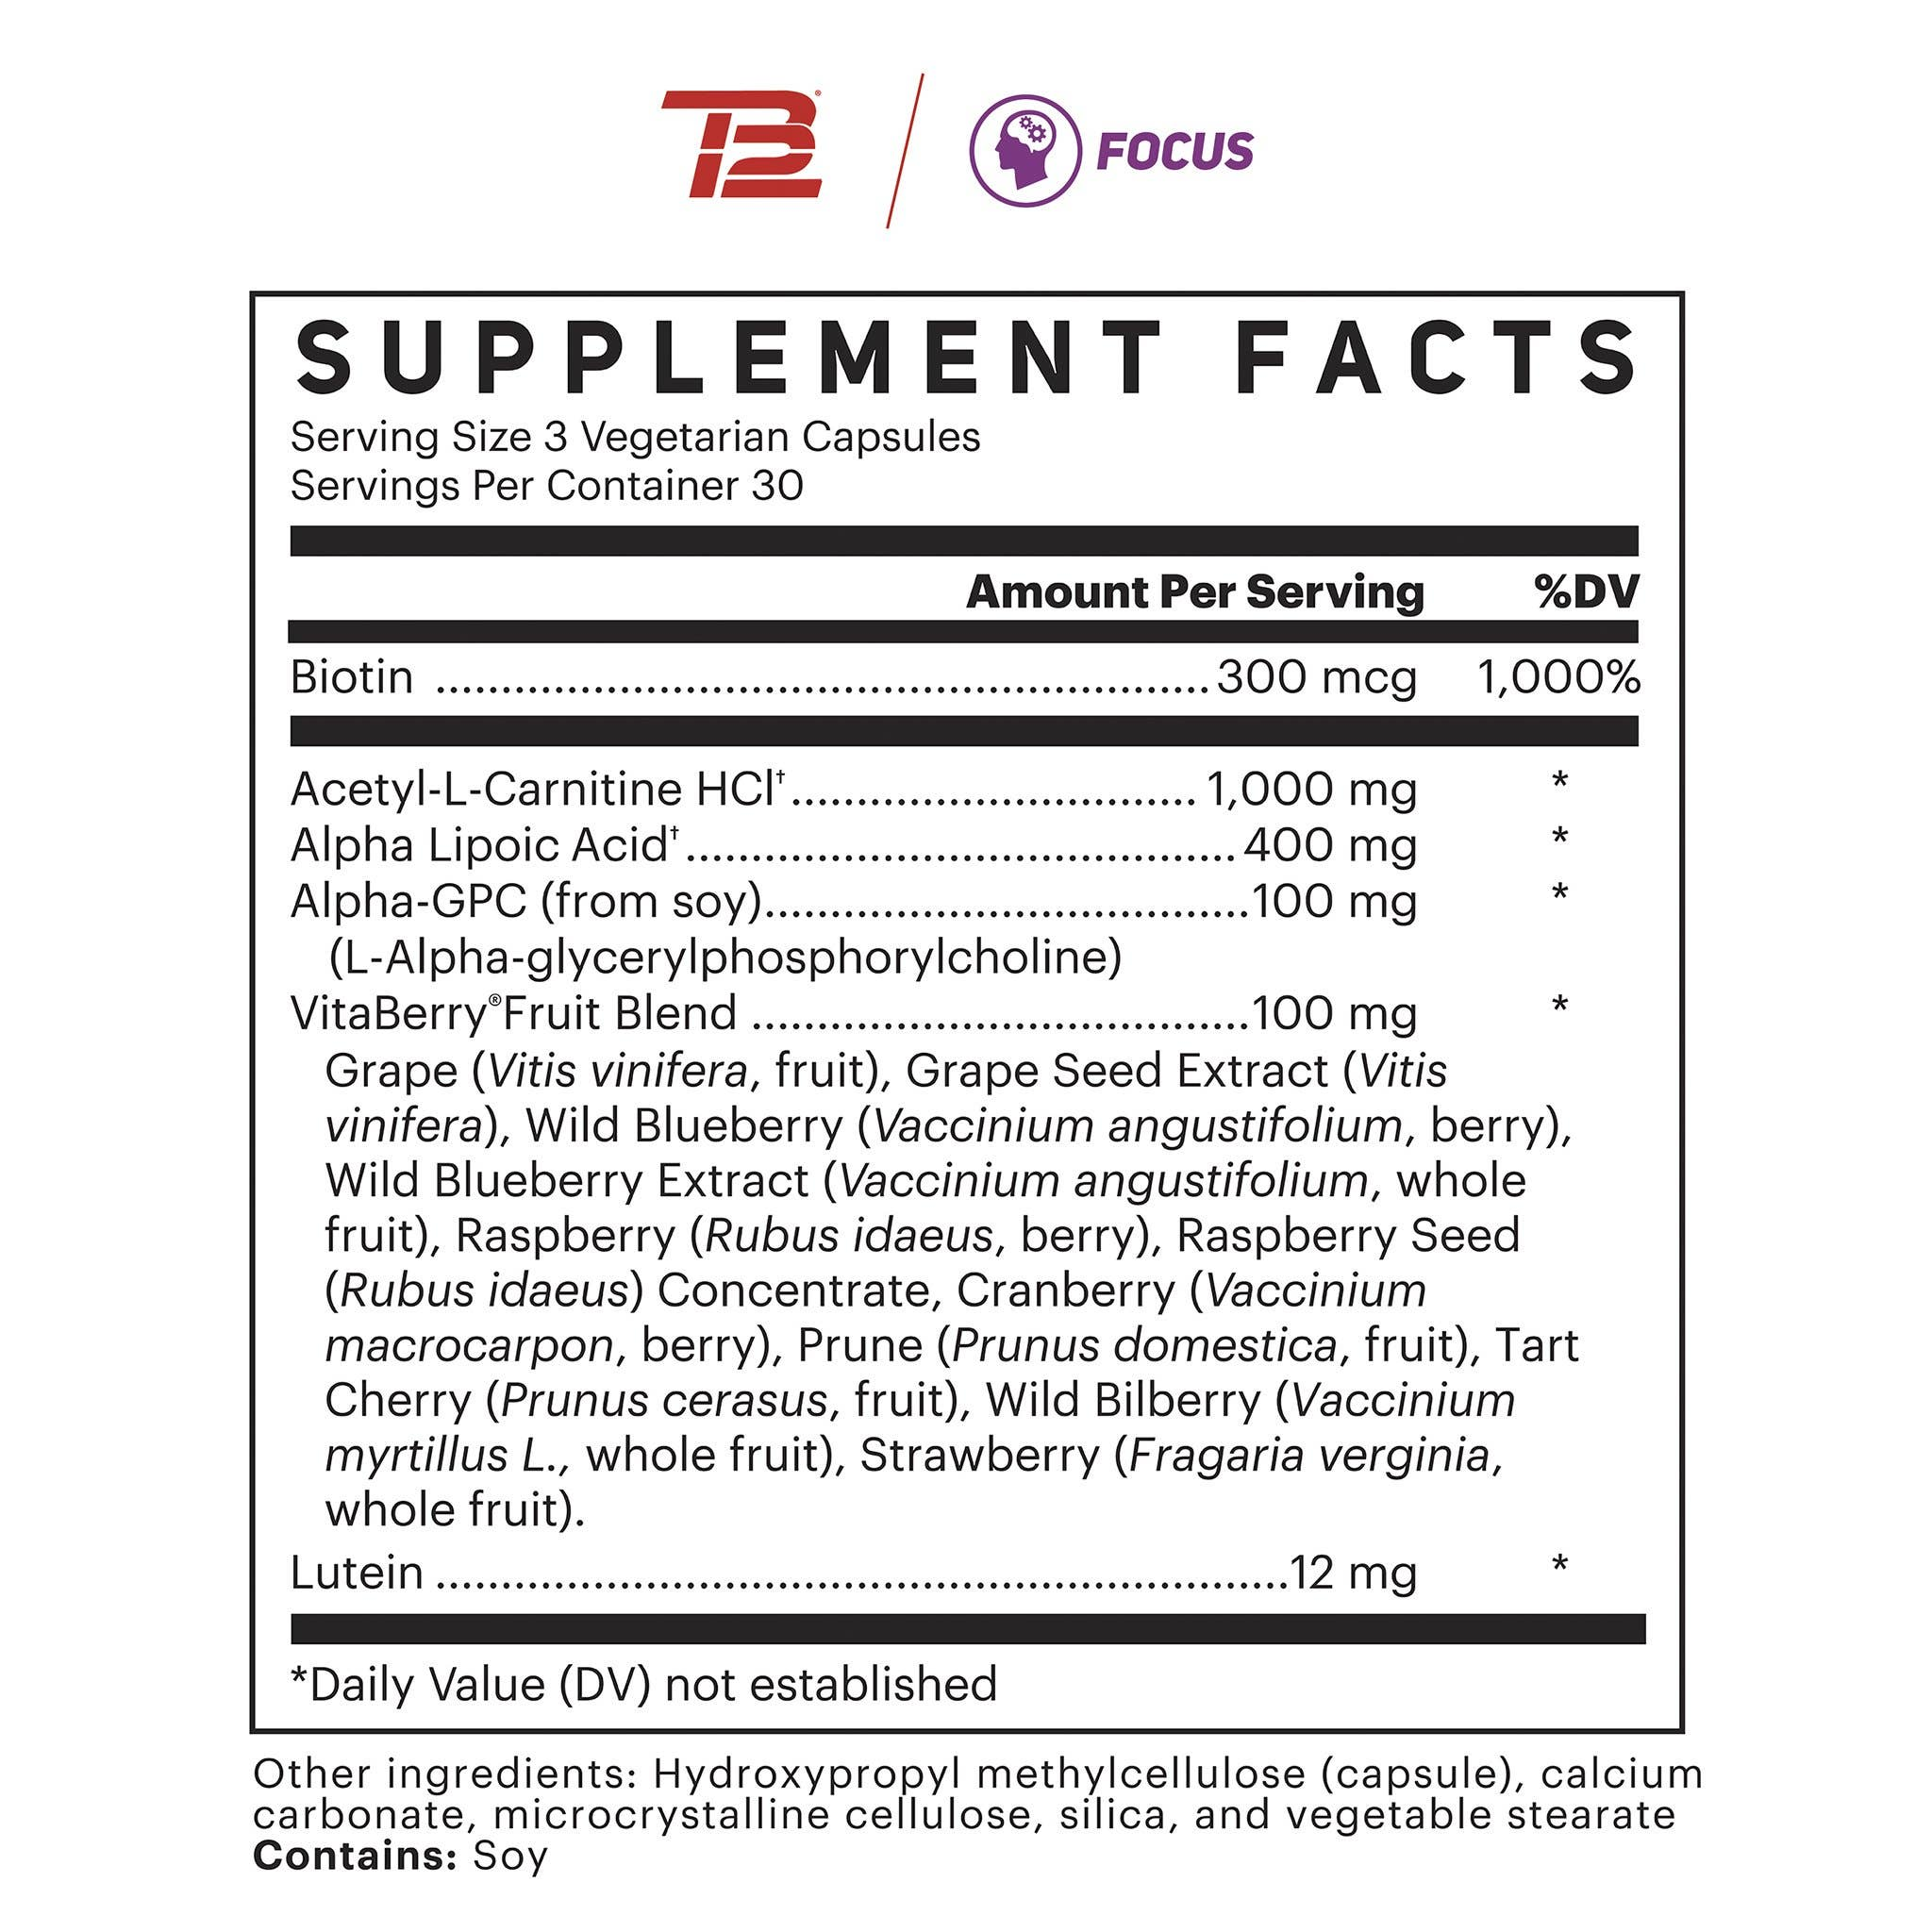 TB12 Focus Facts and Ingredients